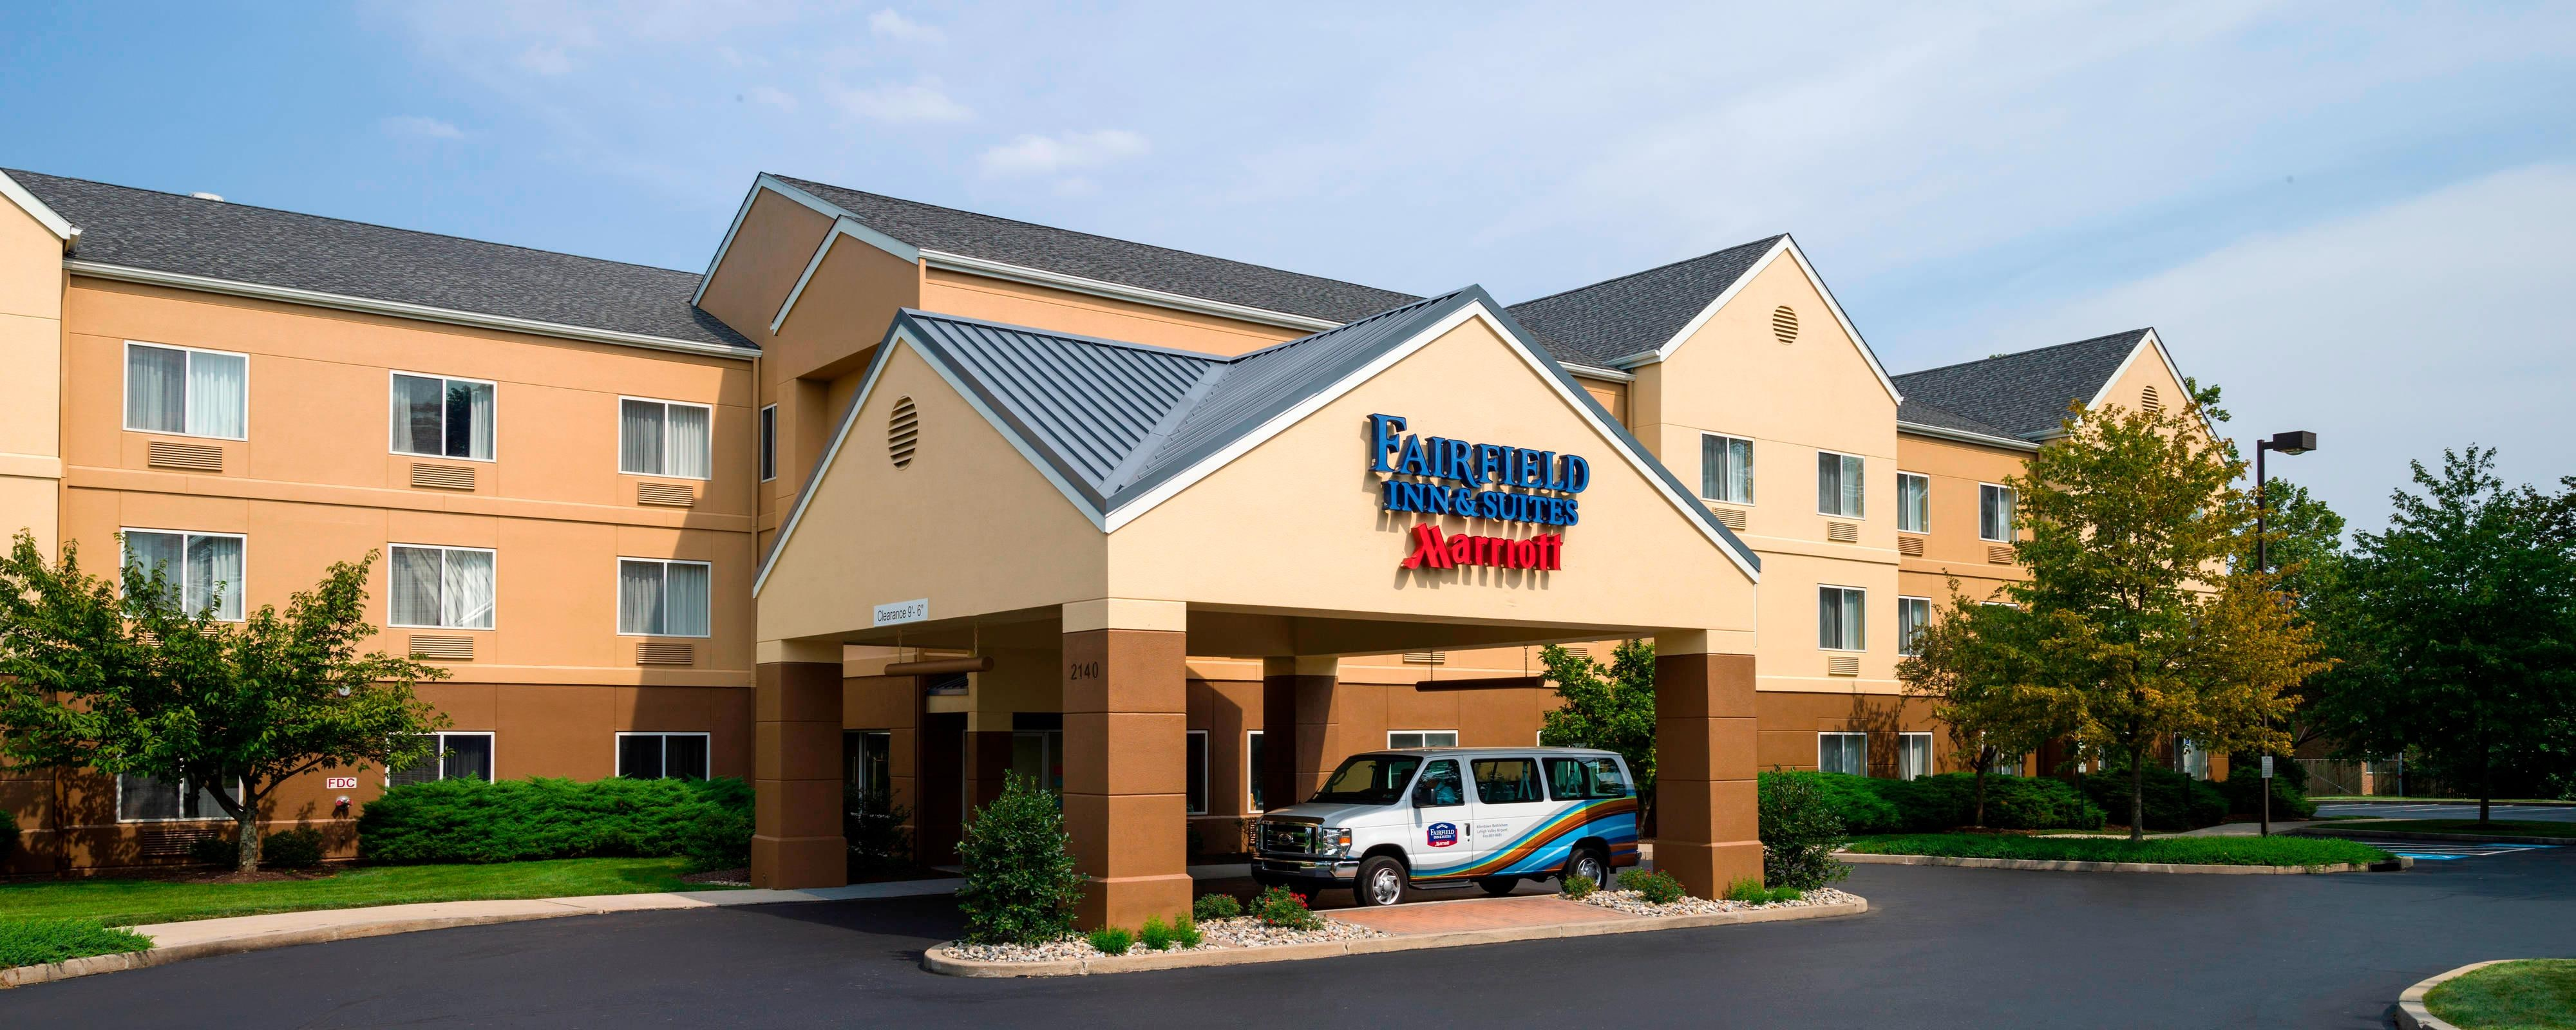 Exterior of Allentown Airport Hotel